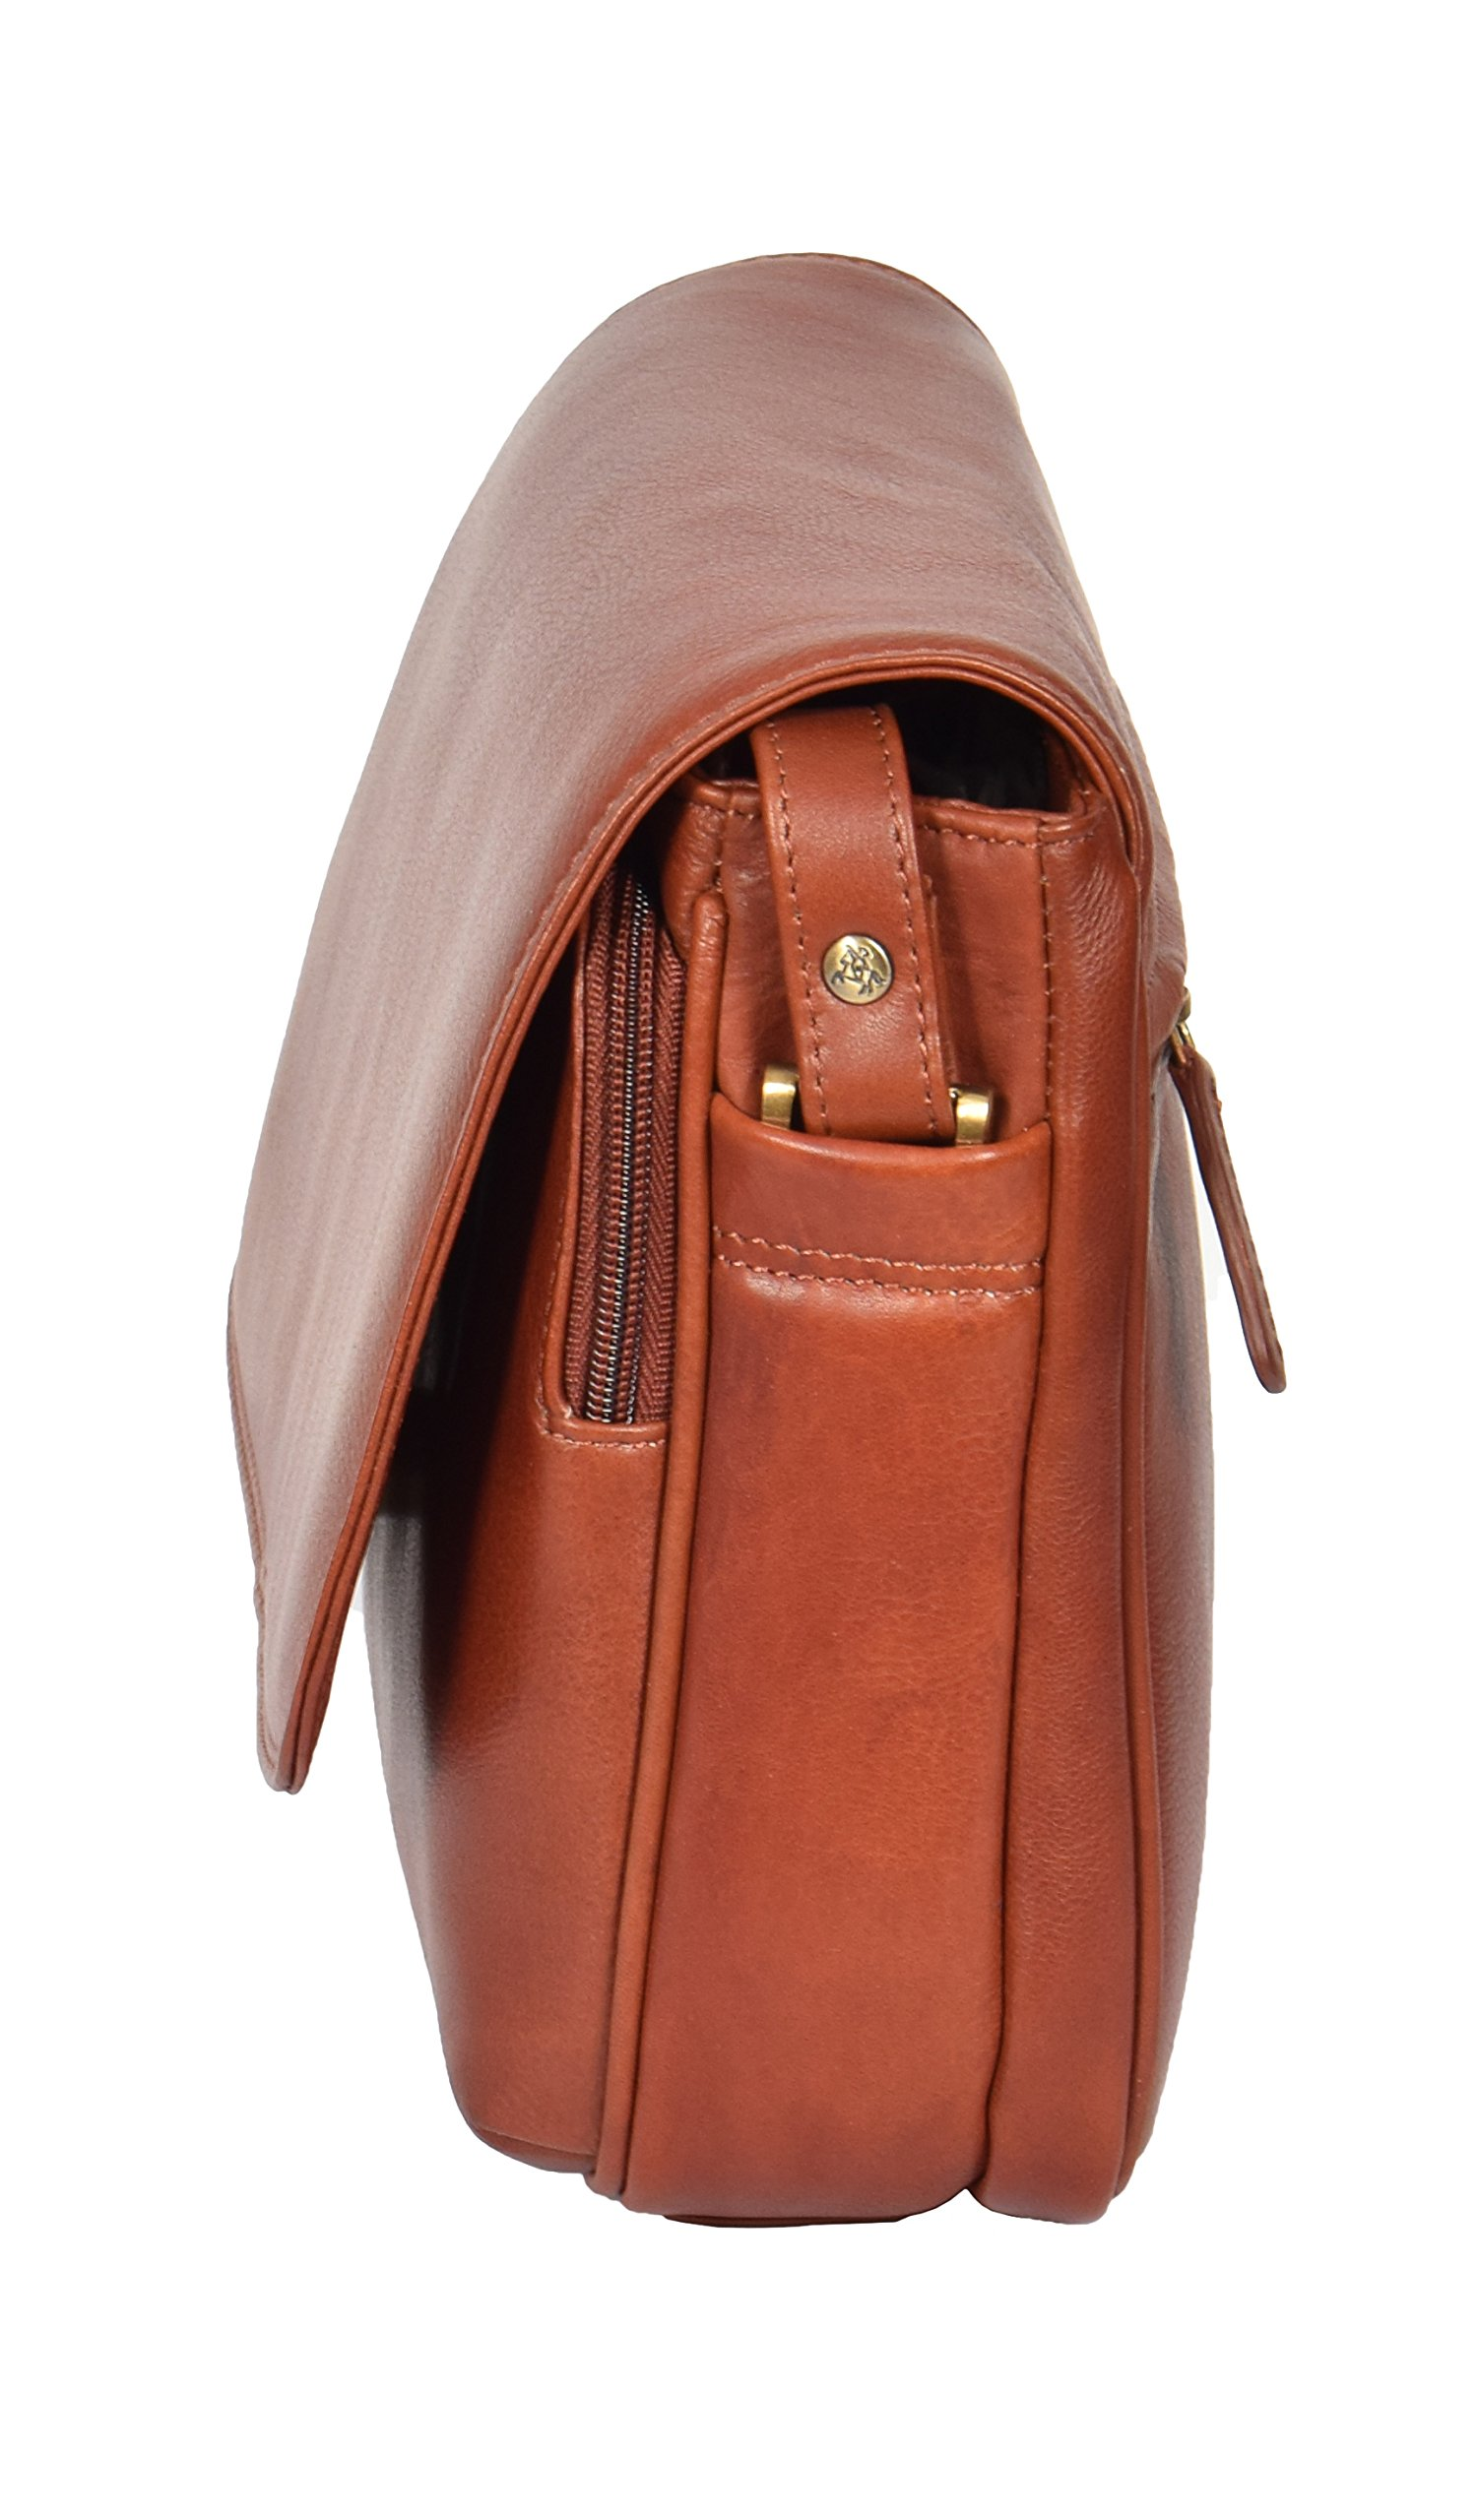 Womens Brown Shoulder Leather Organiser Cross Body Work Messenger Bag A190 by A1 FASHION GOODS (Image #3)